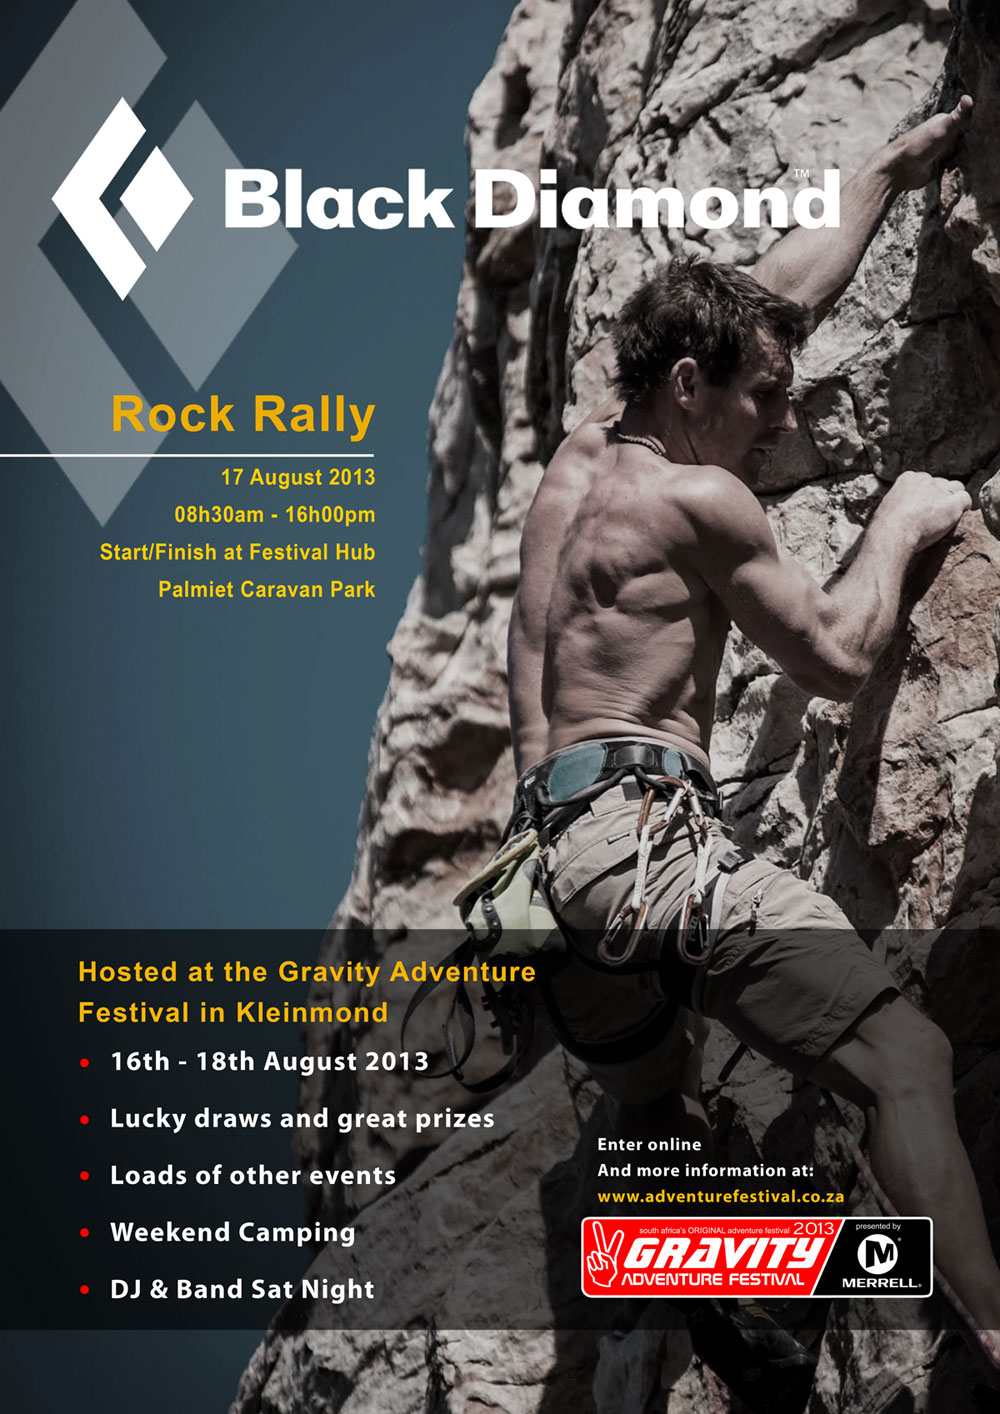 Black Diamond Rock Rally 2013